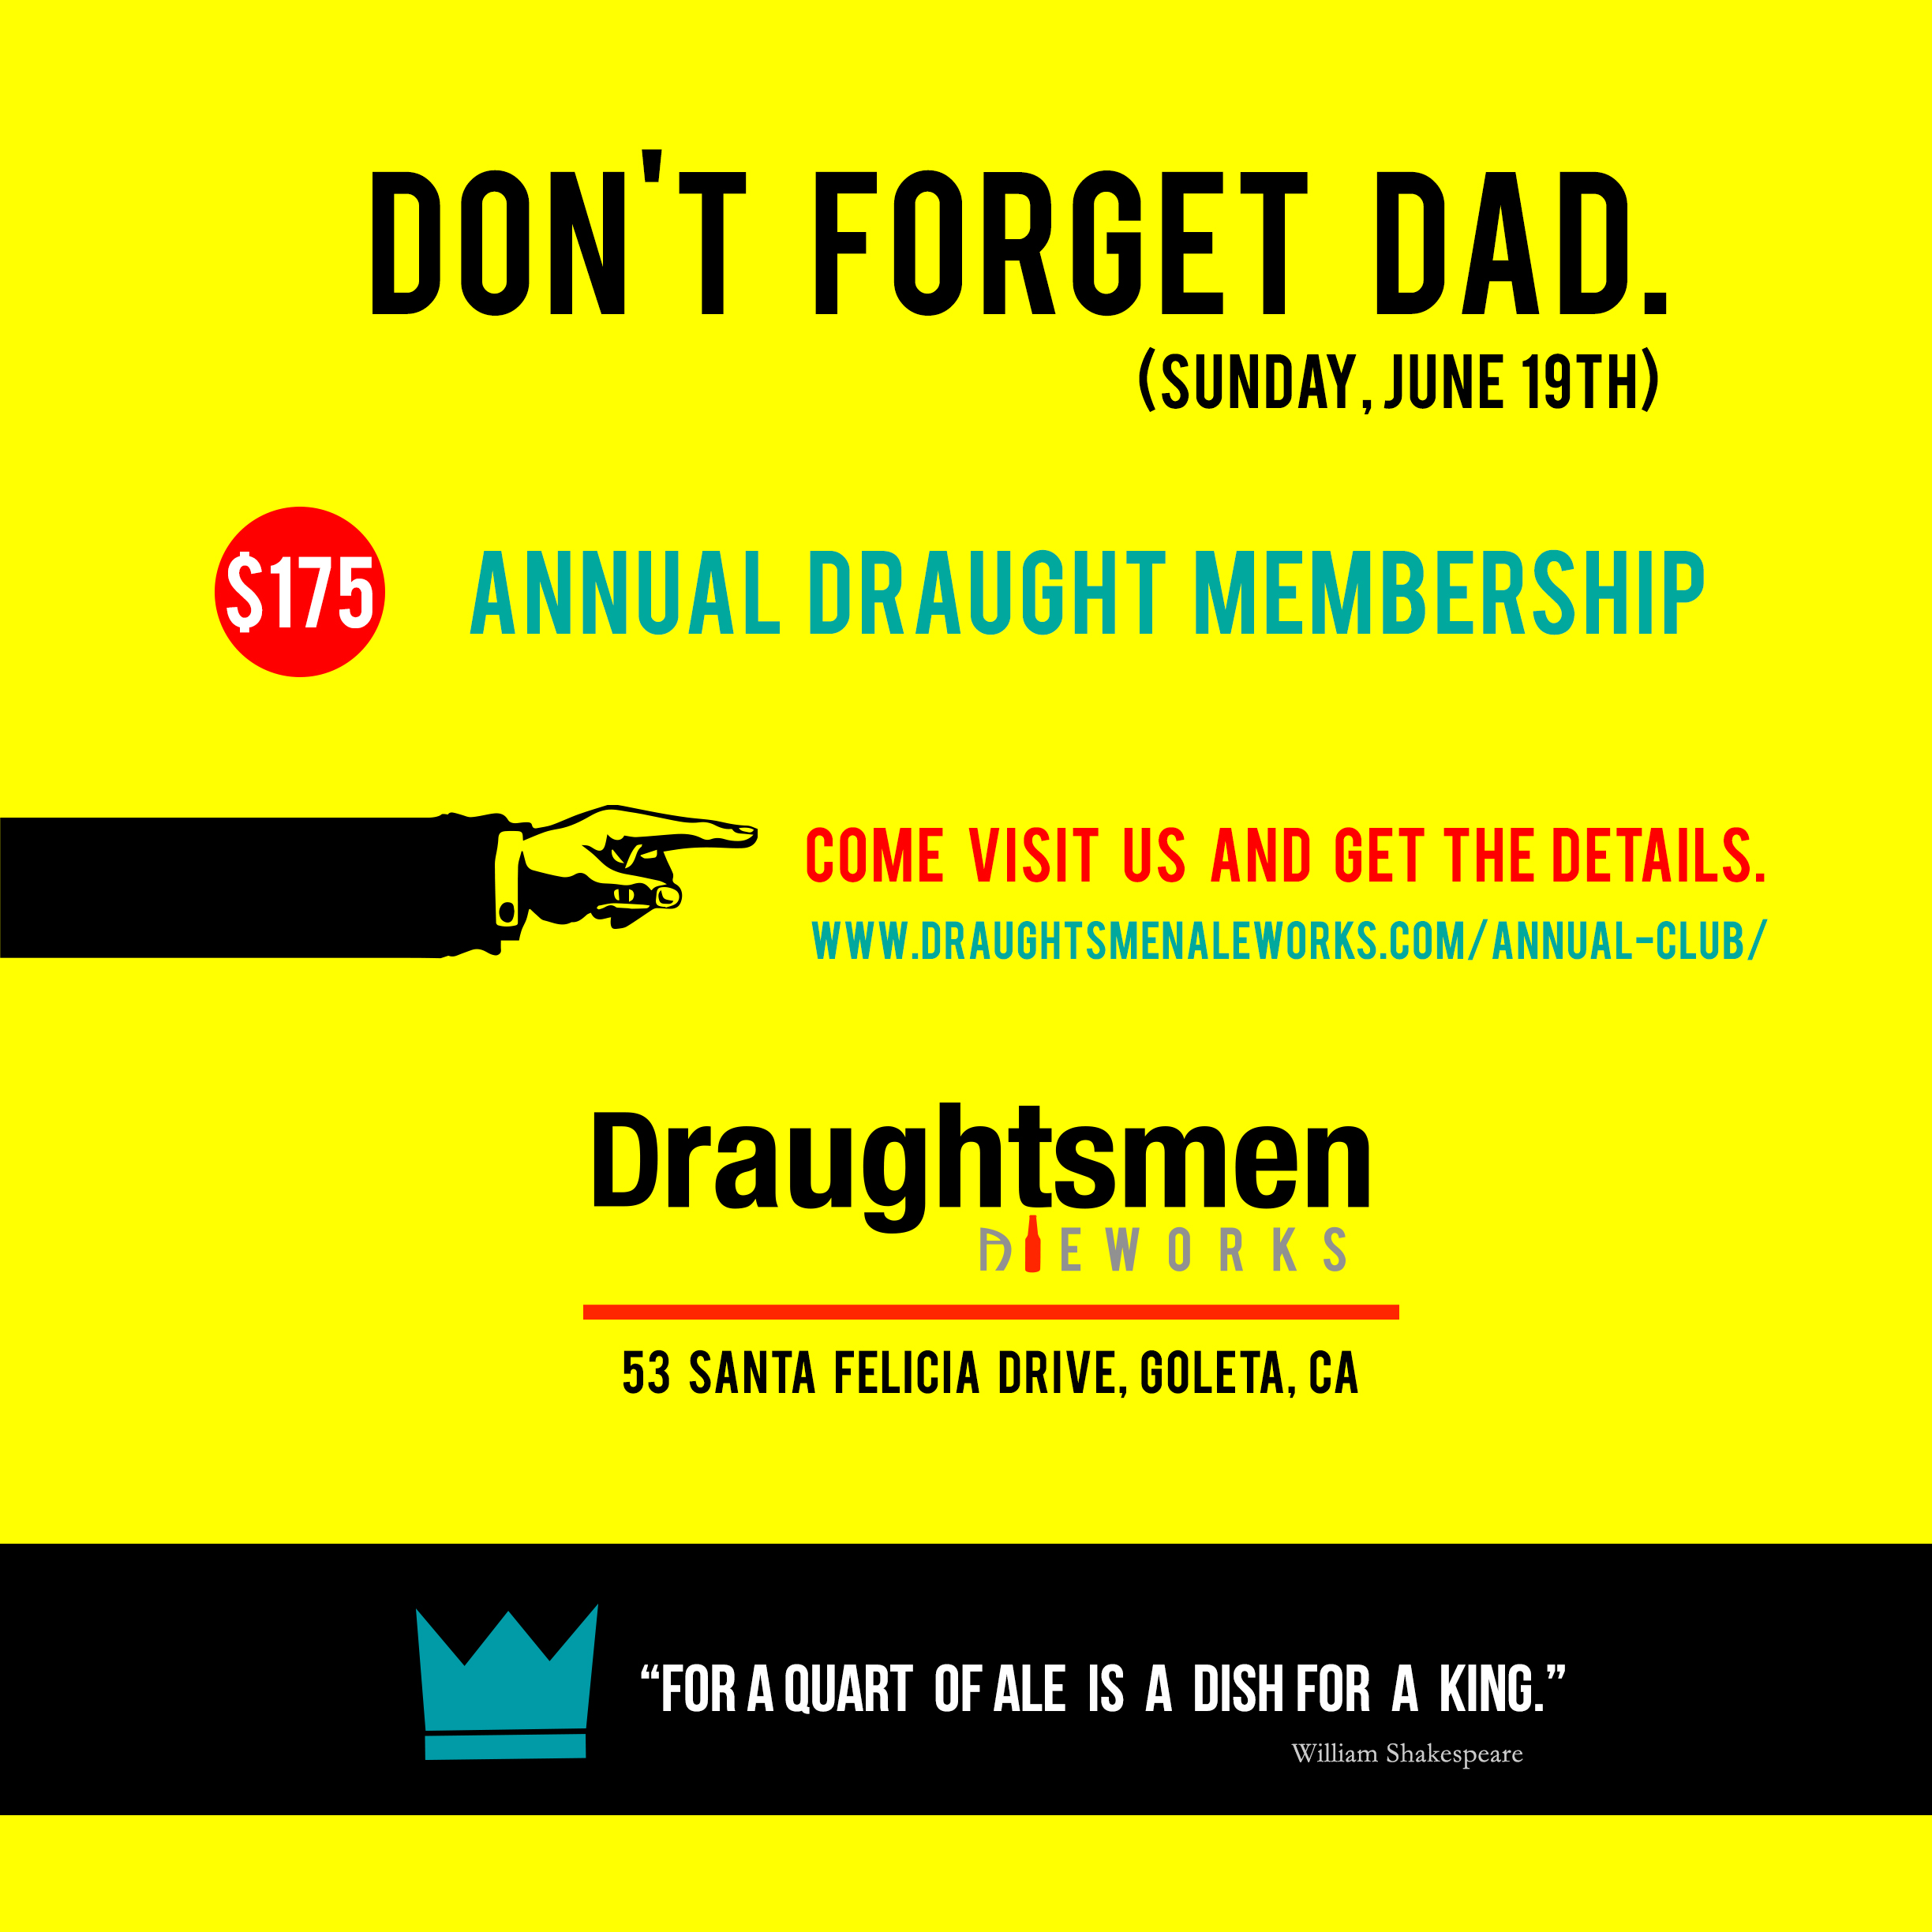 Annual Draught Fathers Day